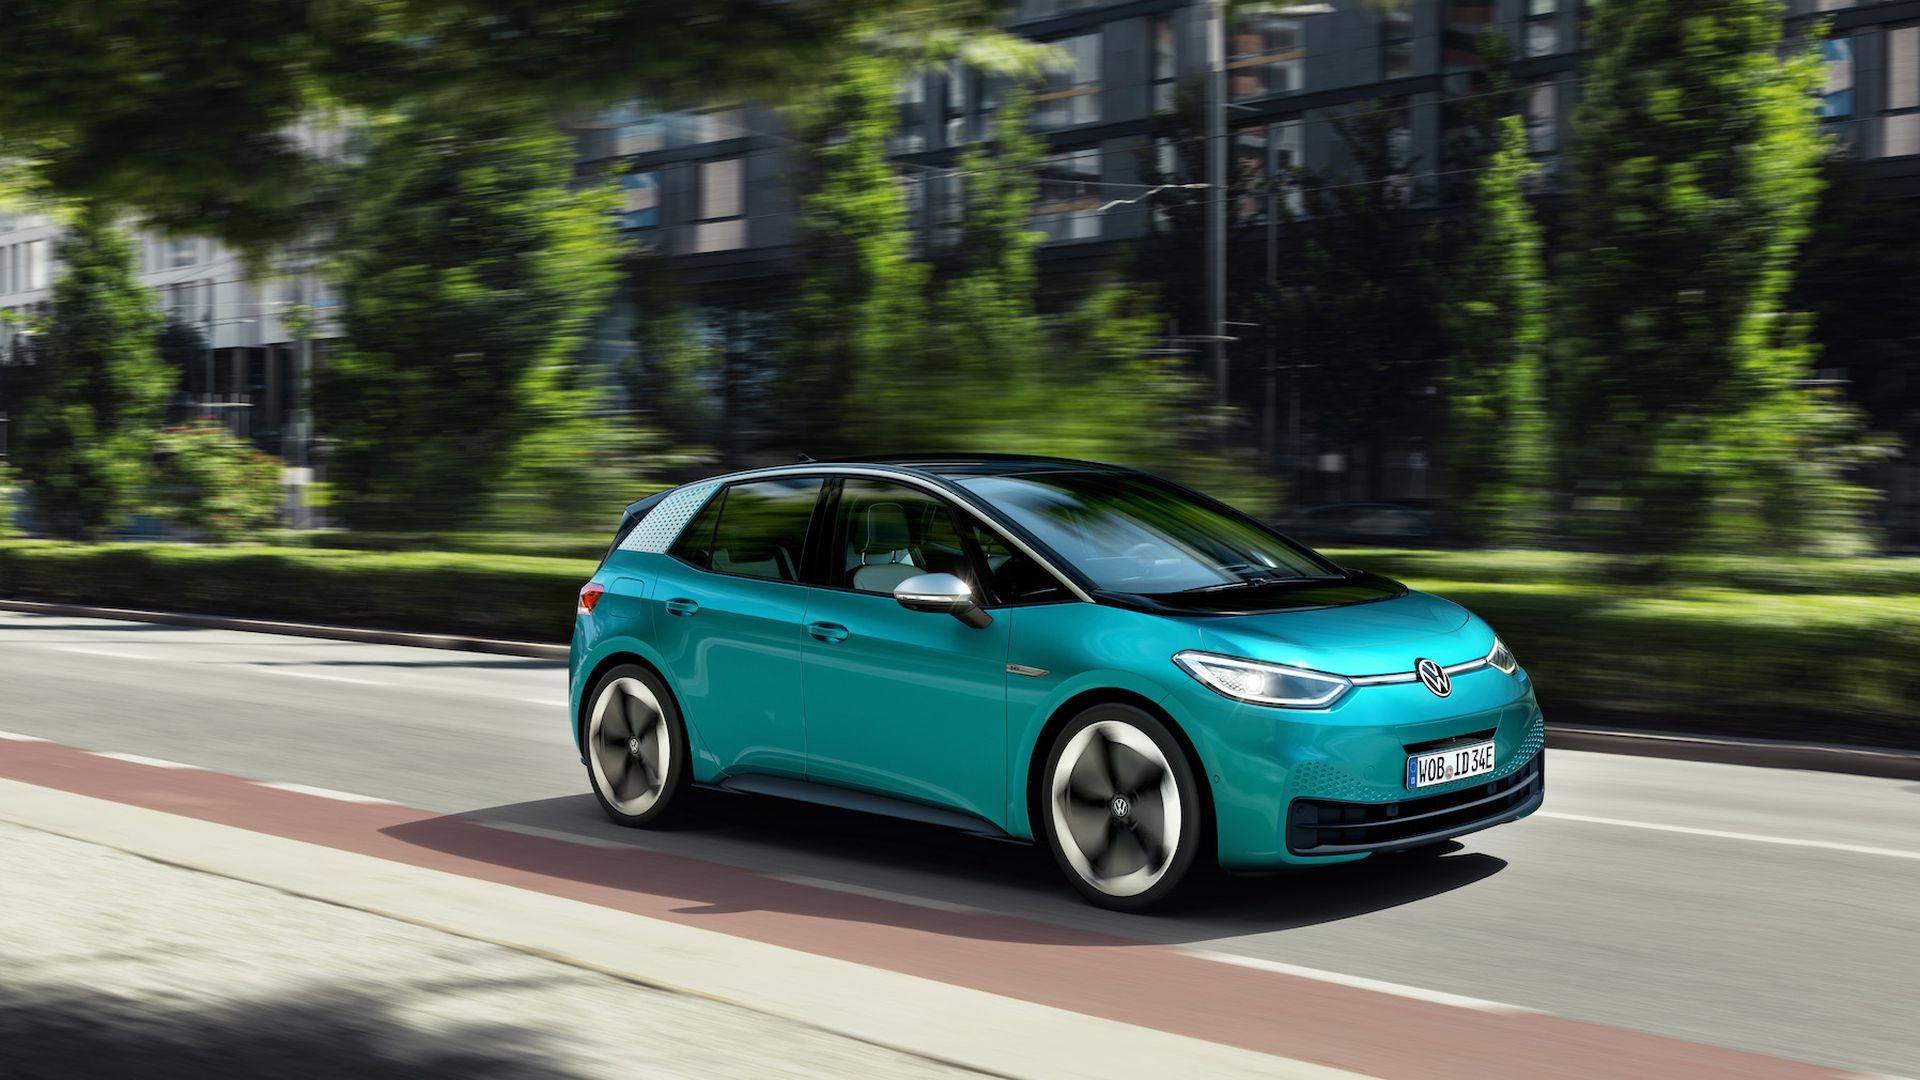 Image of VW's new ID.3 electric vehicle.